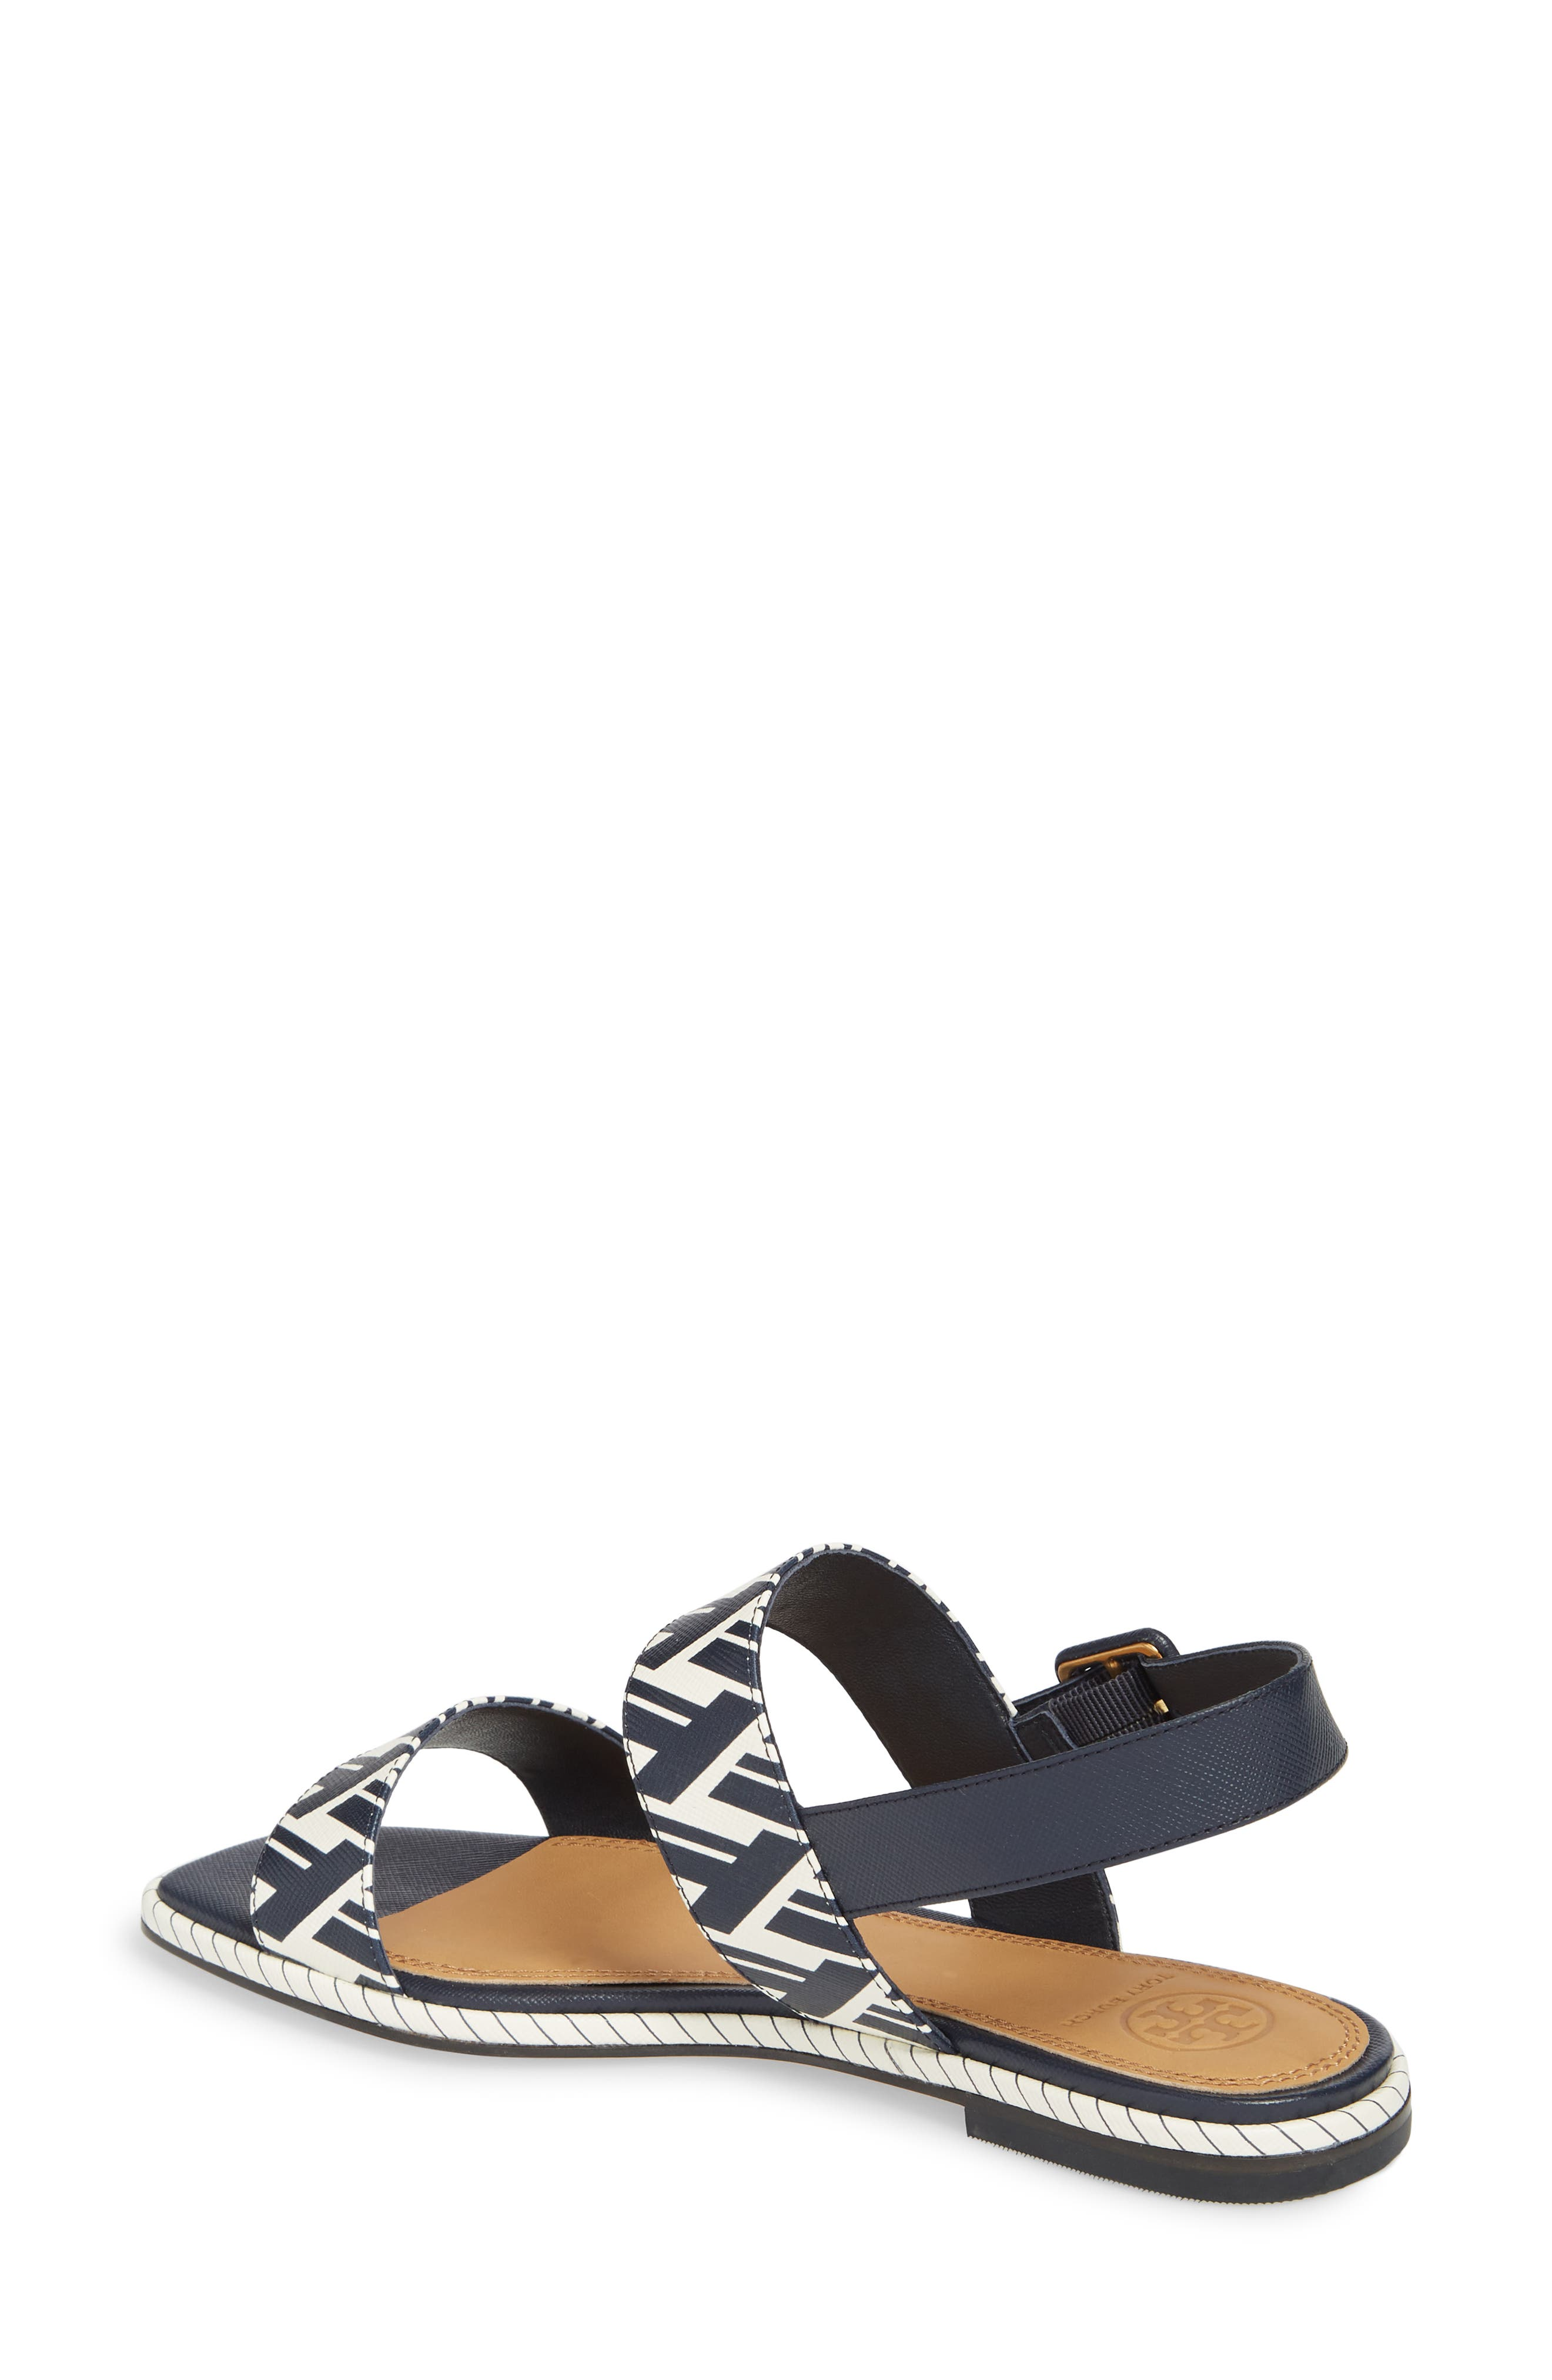 Delaney Double Strap Sandal,                             Alternate thumbnail 9, color,